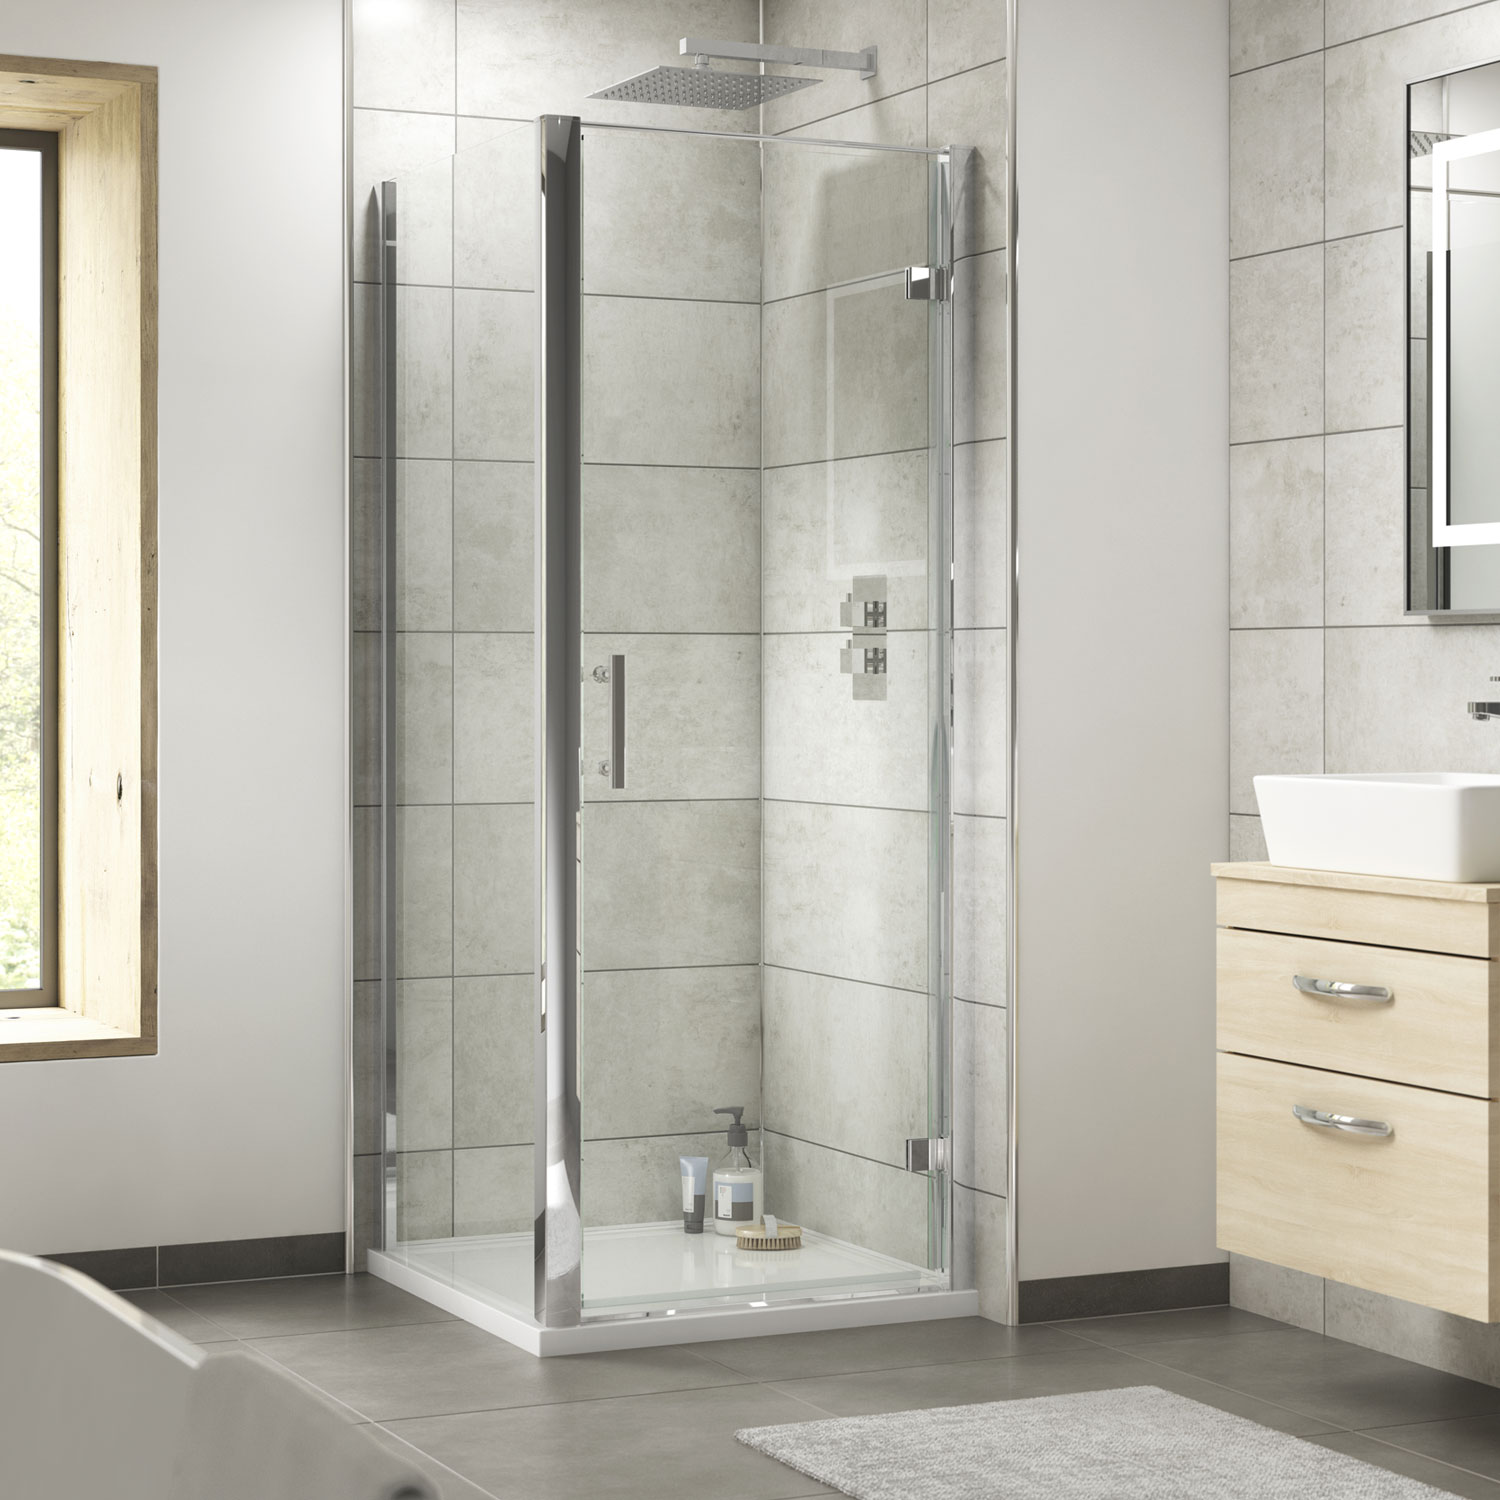 Premier Pacific Hinged Shower Enclosure 700mm x 700mm with Shower Tray - 6mm Glass-3